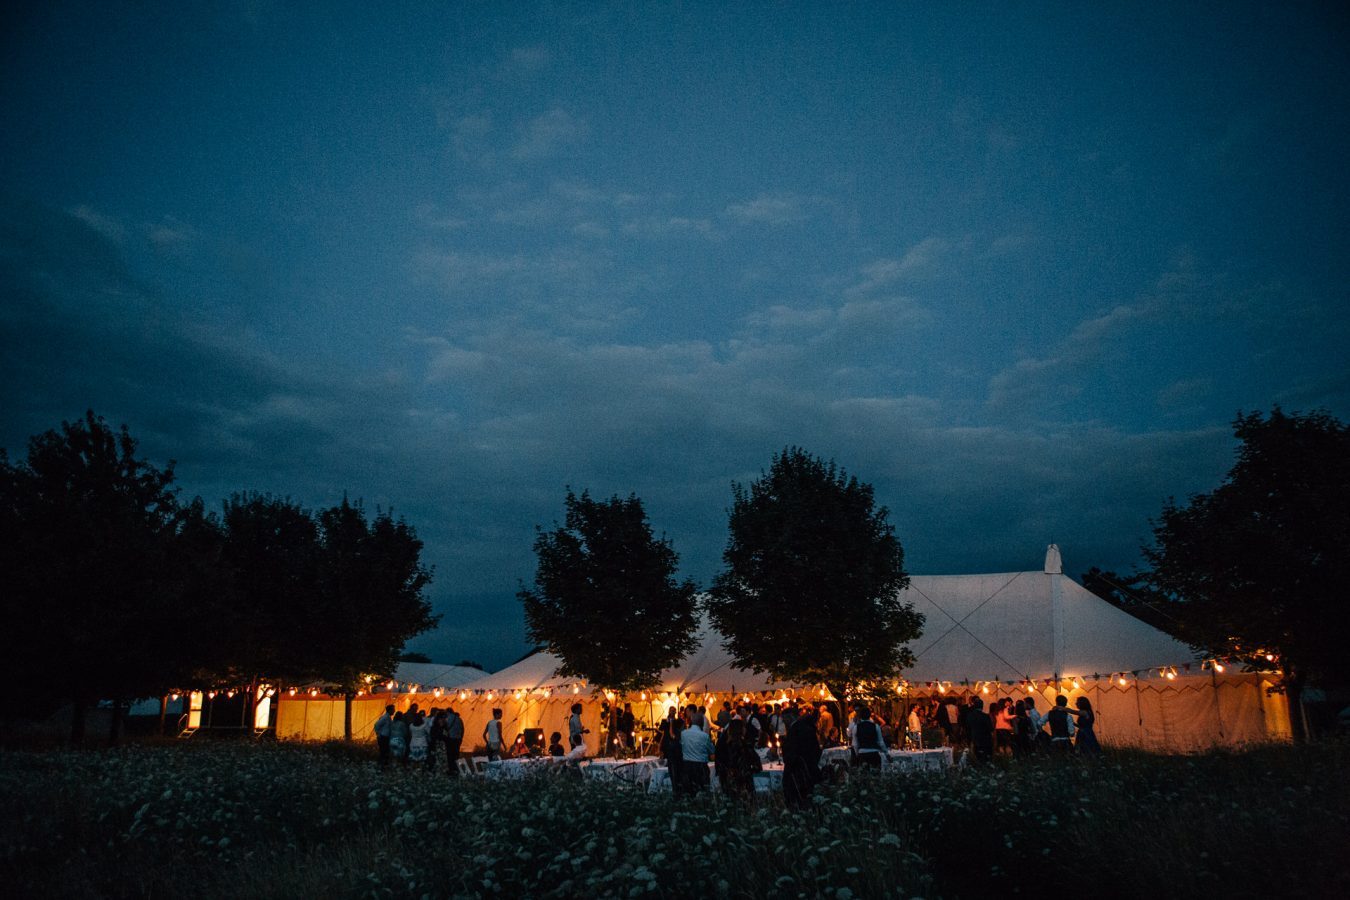 The prettiest view across a flower meadow to a beautiful House of Hud marquee wedding reception in the evening lit up my festoon lighting photographed by natural Kent Wedding photographer Matilda Delves